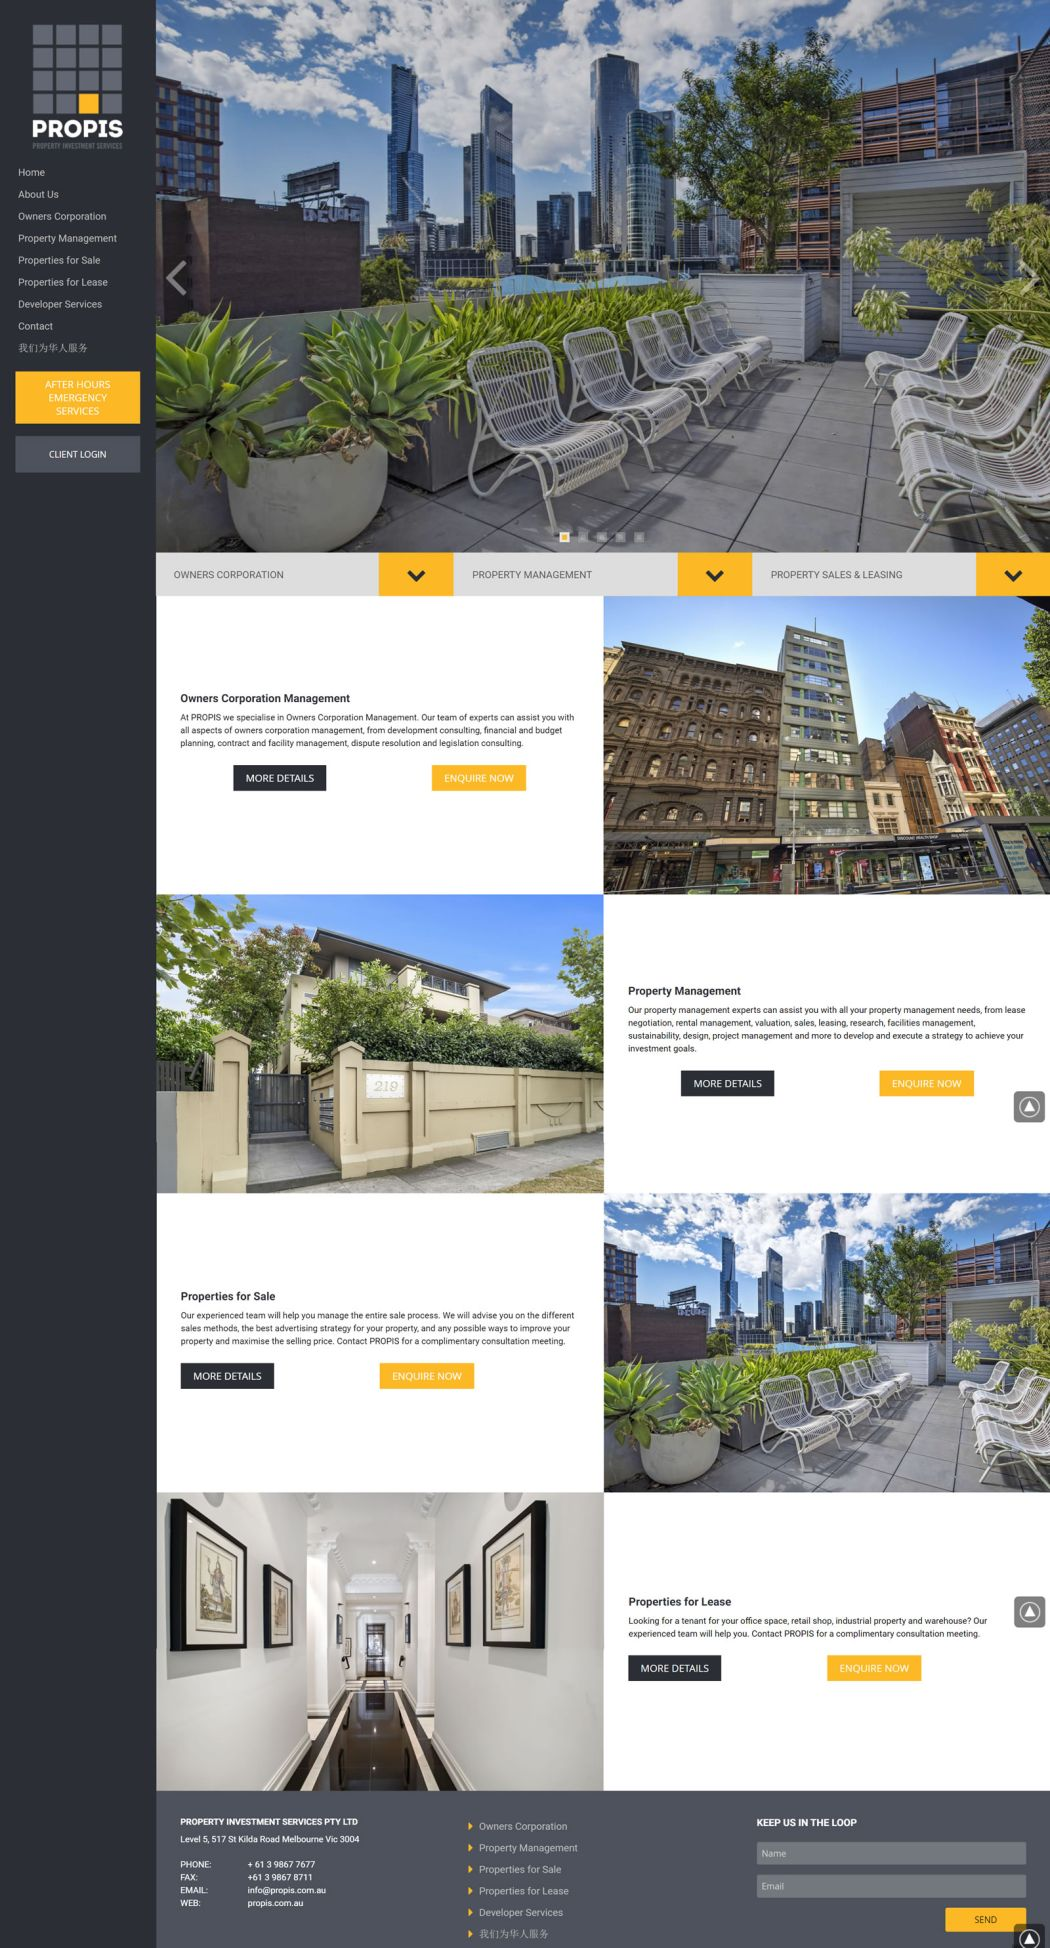 Propis full homepage-small